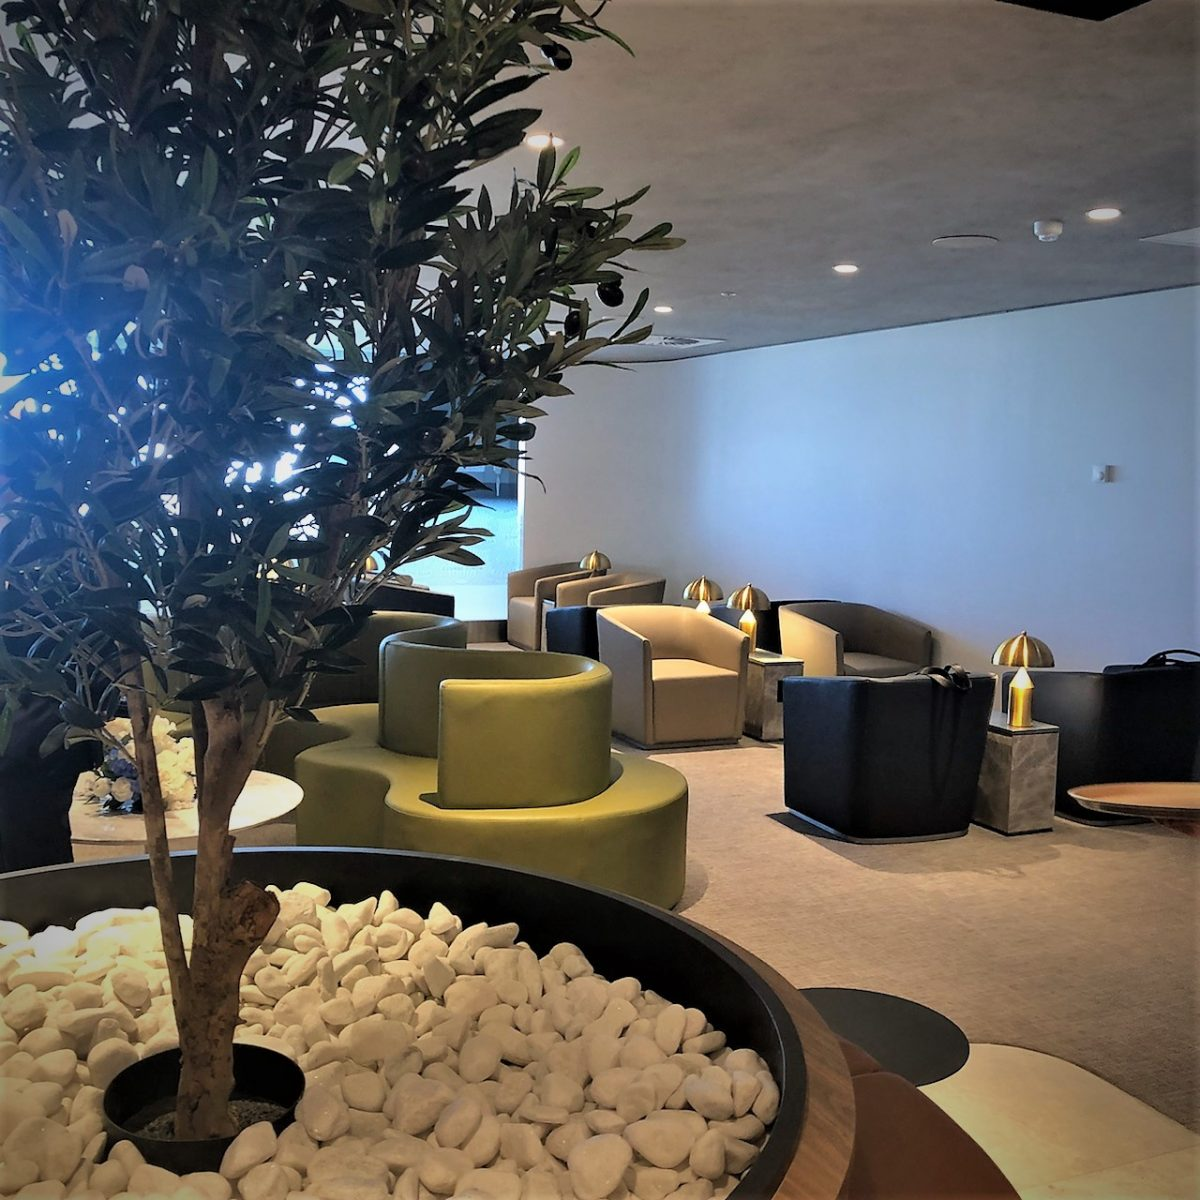 American Express Lounge, Sydney Airport: Relaxation area